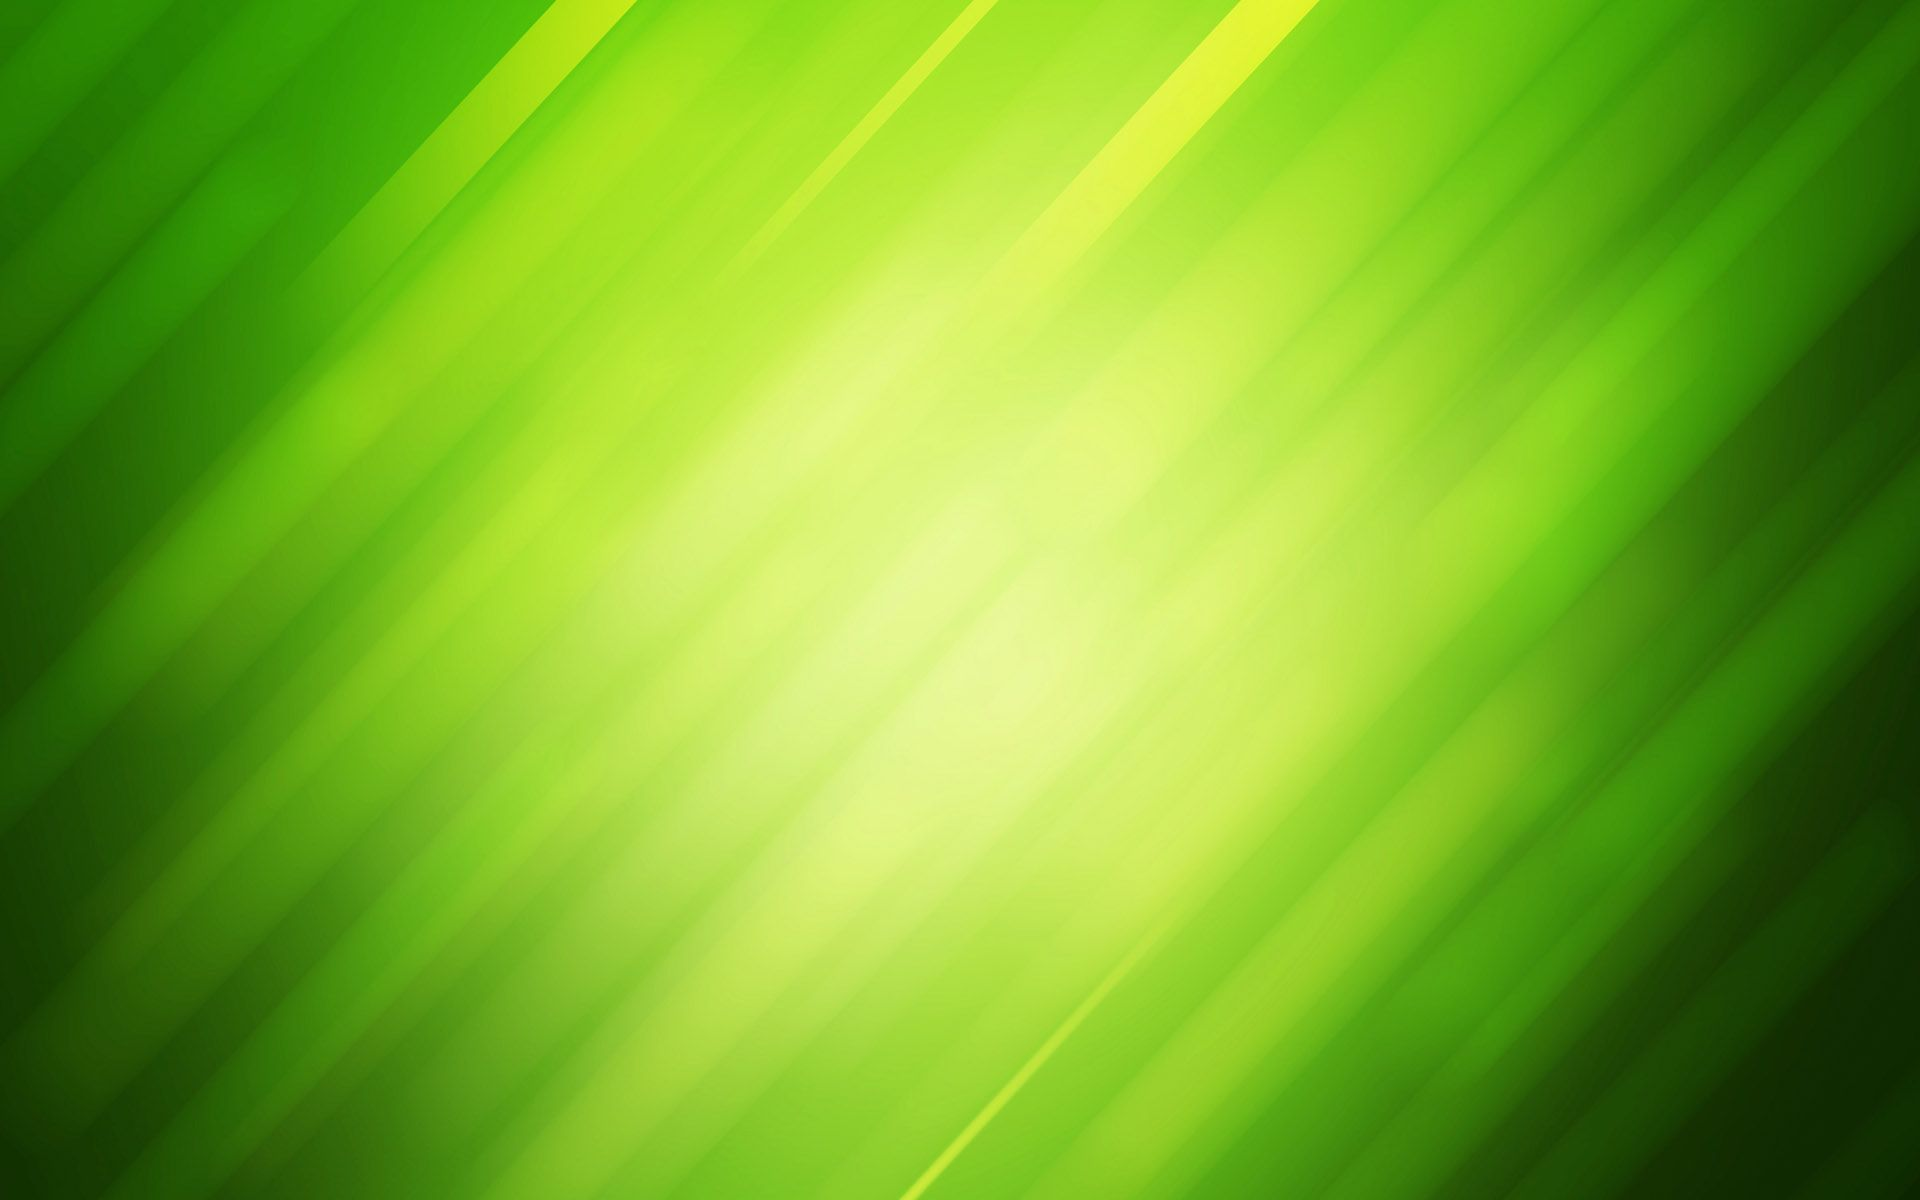 Cool Green Wallpaper - WallpaperSafari | imágenes coloridas del vector en